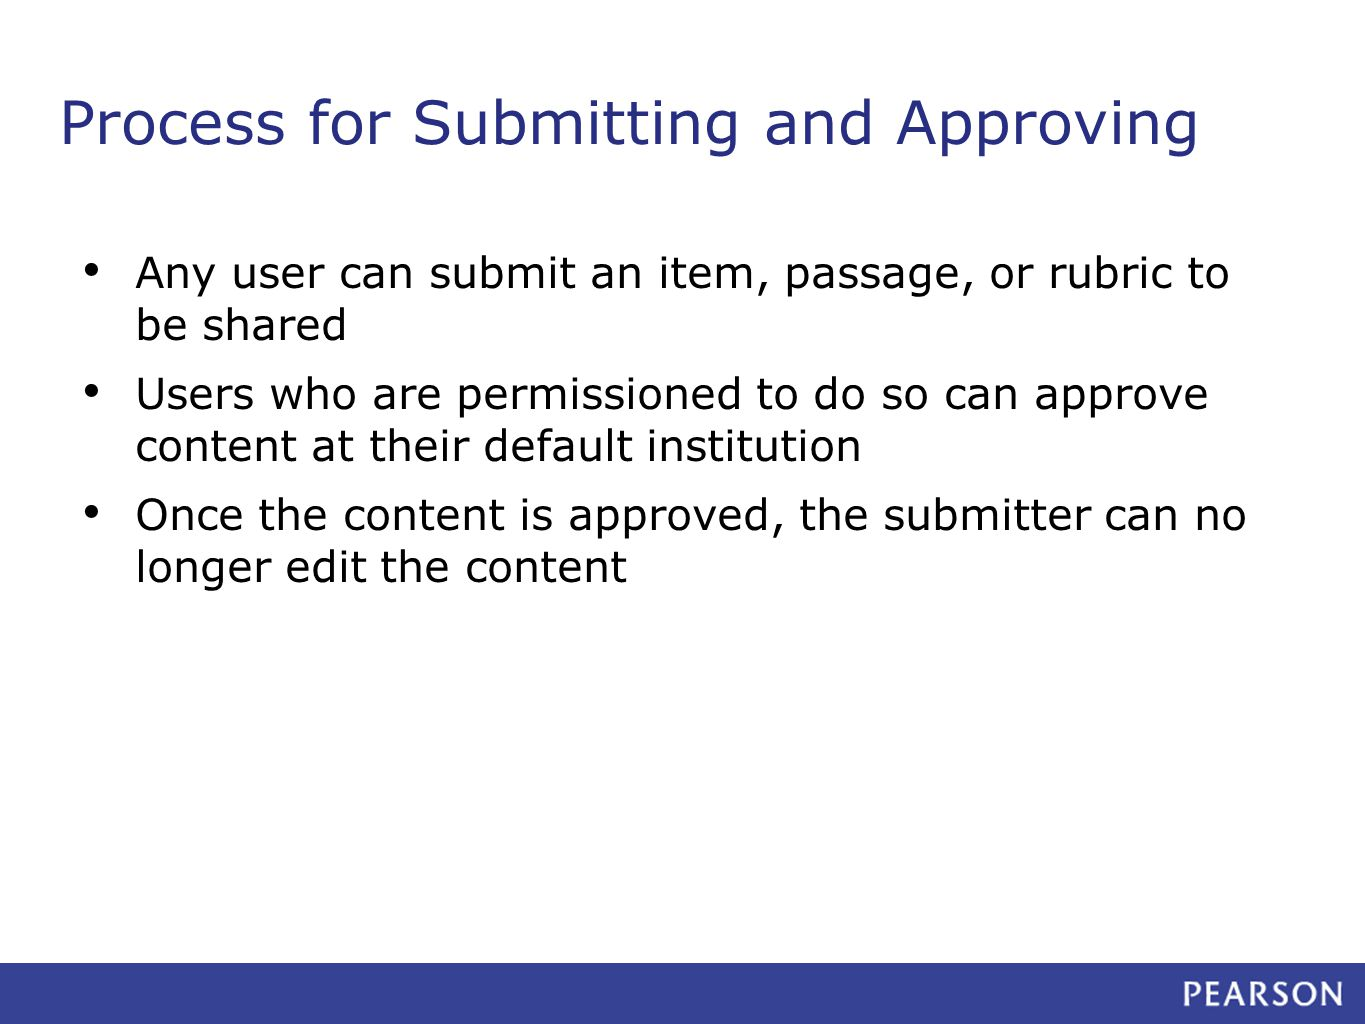 Process for Submitting and Approving Any user can submit an item, passage, or rubric to be shared Users who are permissioned to do so can approve content at their default institution Once the content is approved, the submitter can no longer edit the content